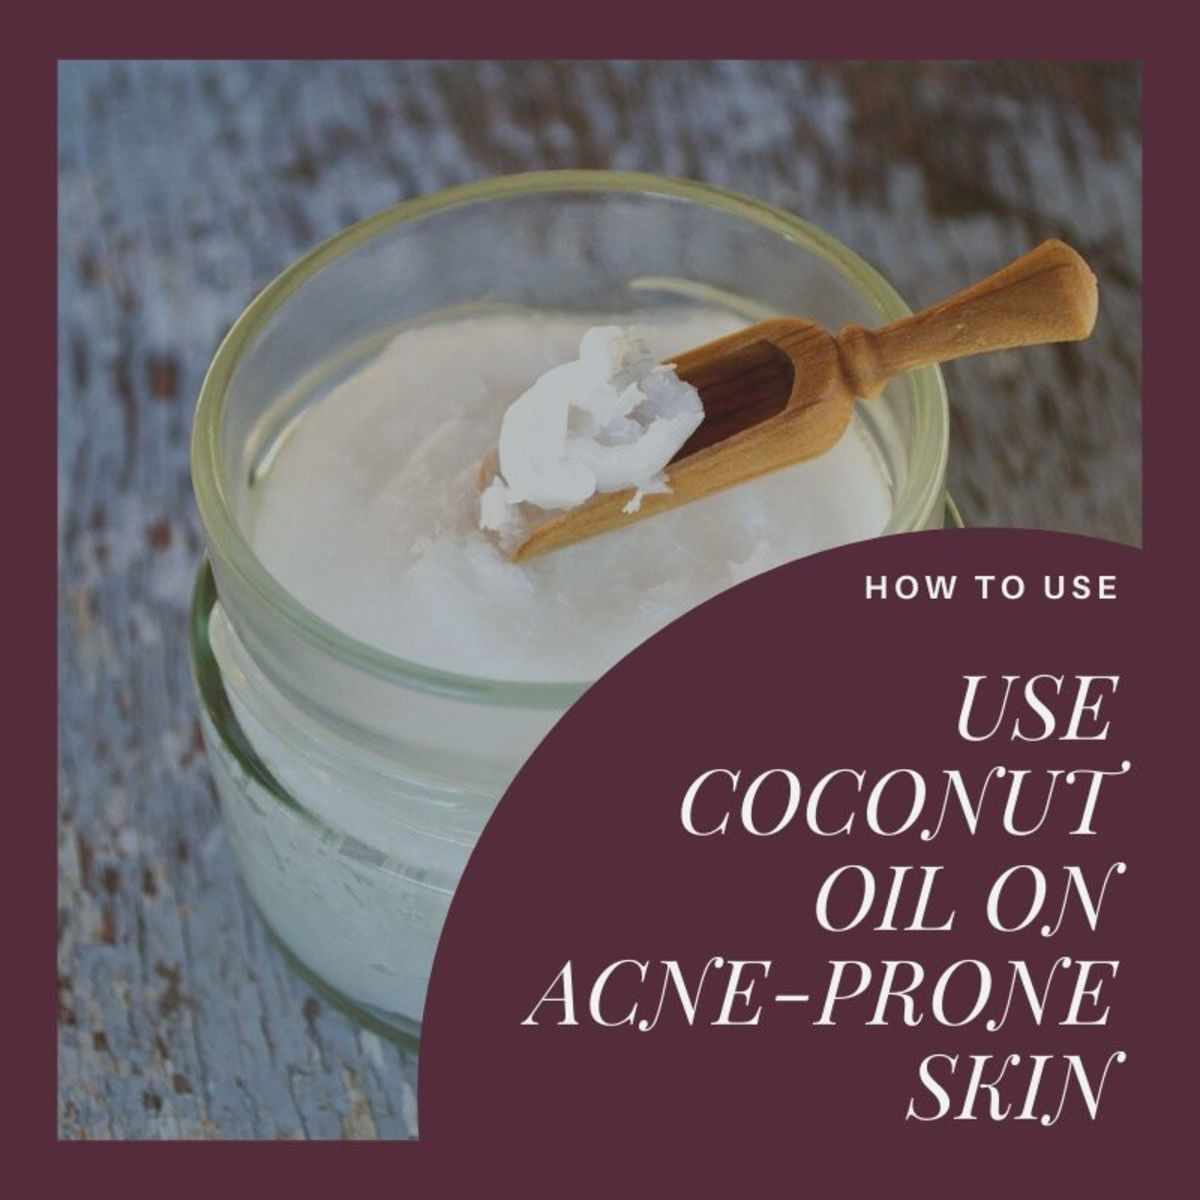 Coconut oil is great for keeping acne at bay. It also helps strengthen underlying skin tissue and removes dead cells that make skin appear dry and flaky.